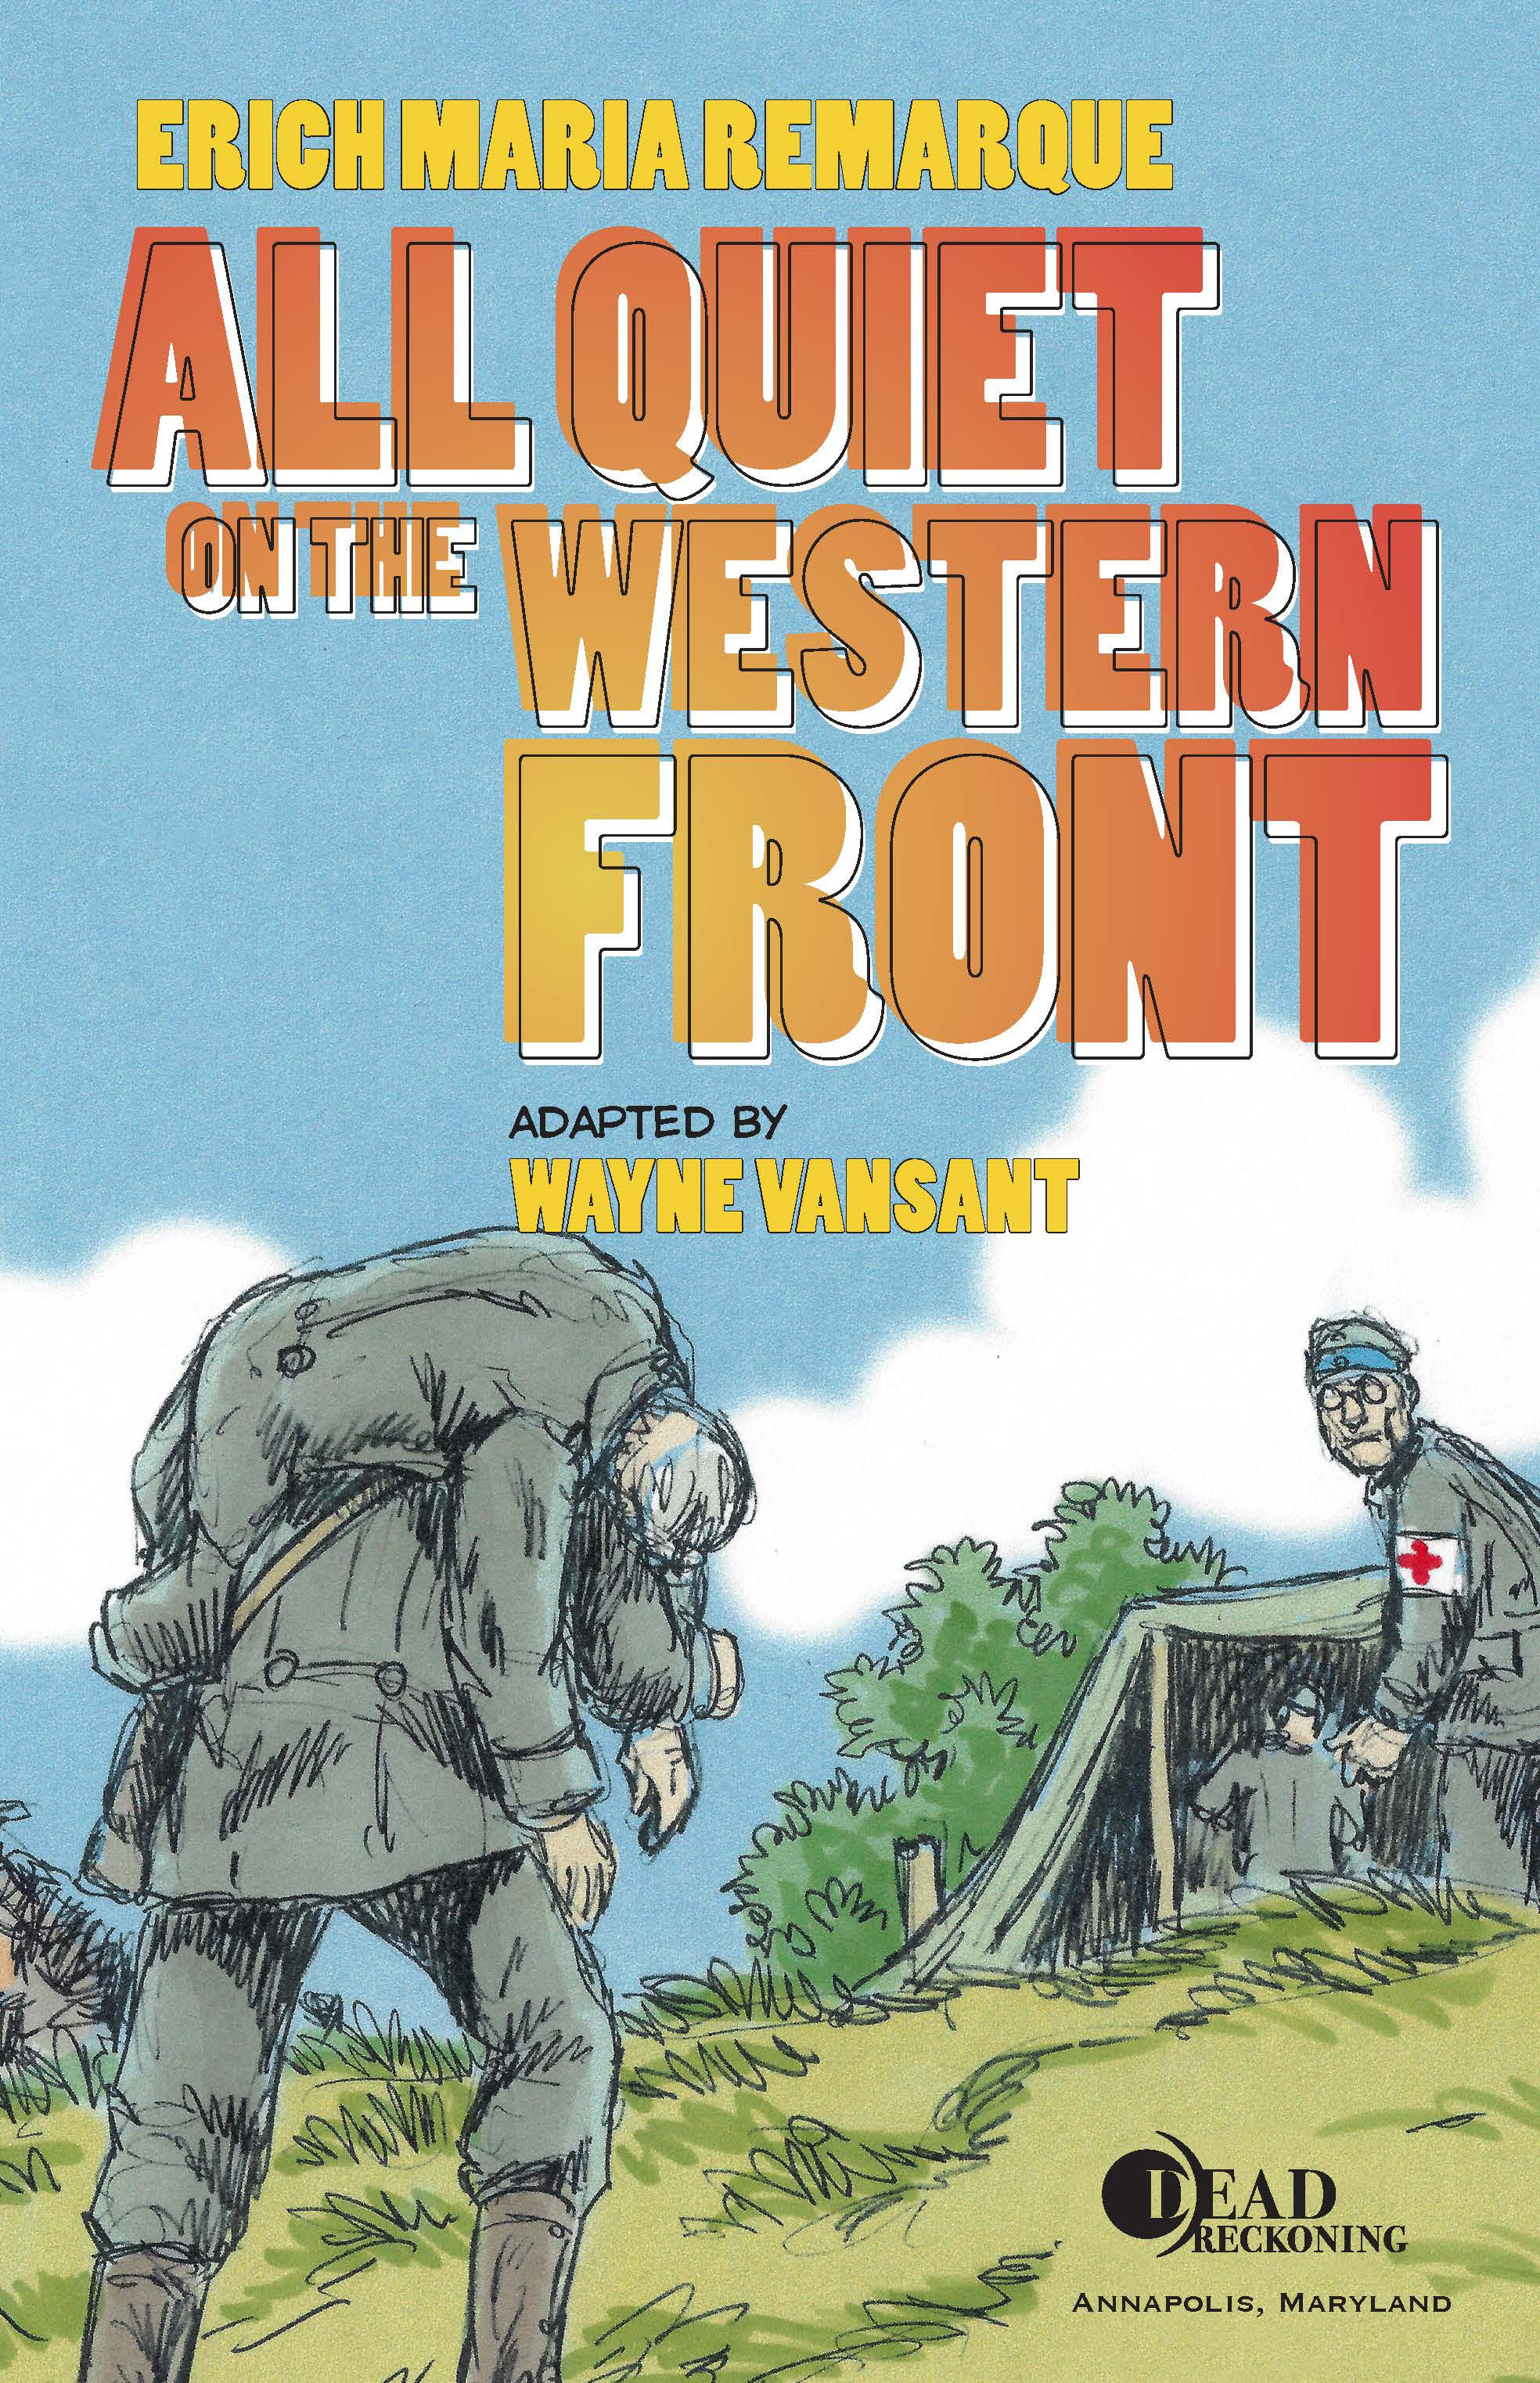 Additional Images: All Quiet on the Western Front